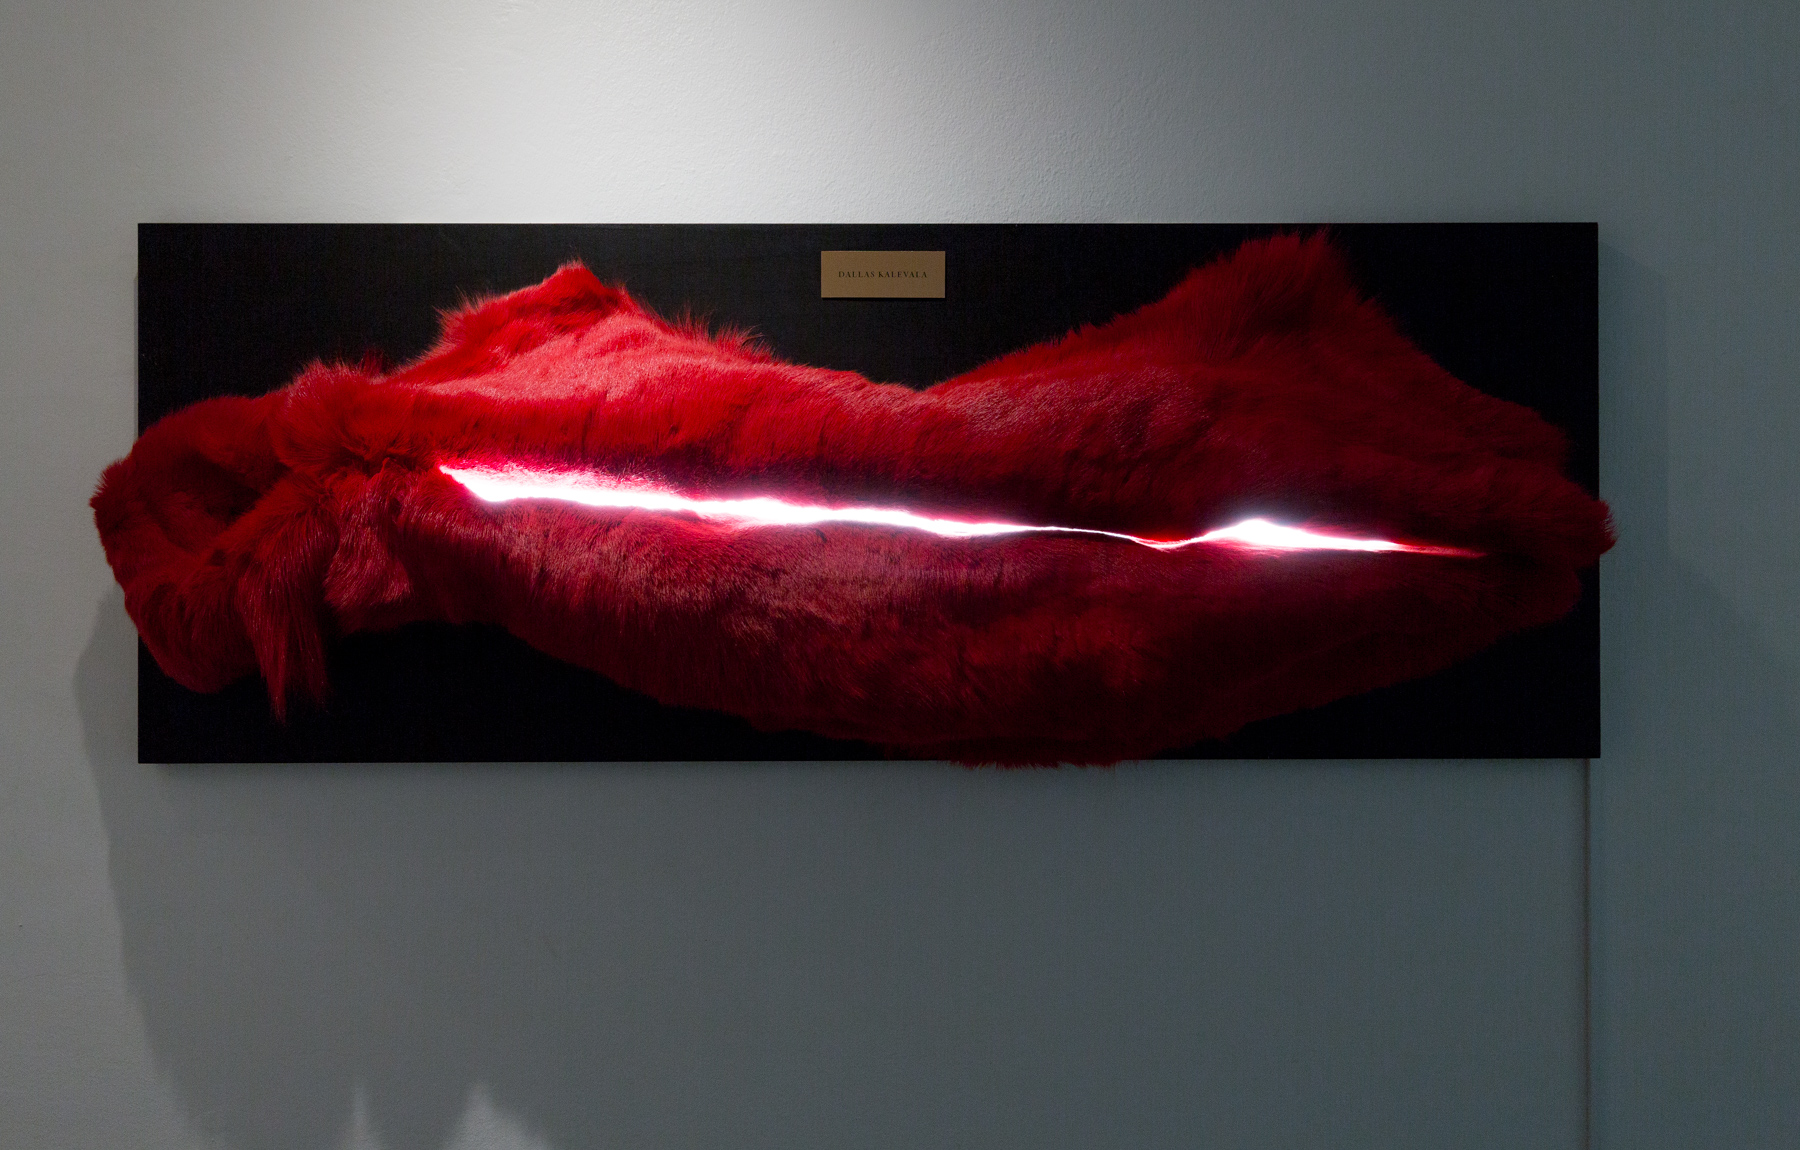 DALLAS KALEVALA (Colored reindeer skin, plywood, led light 170x50cm)